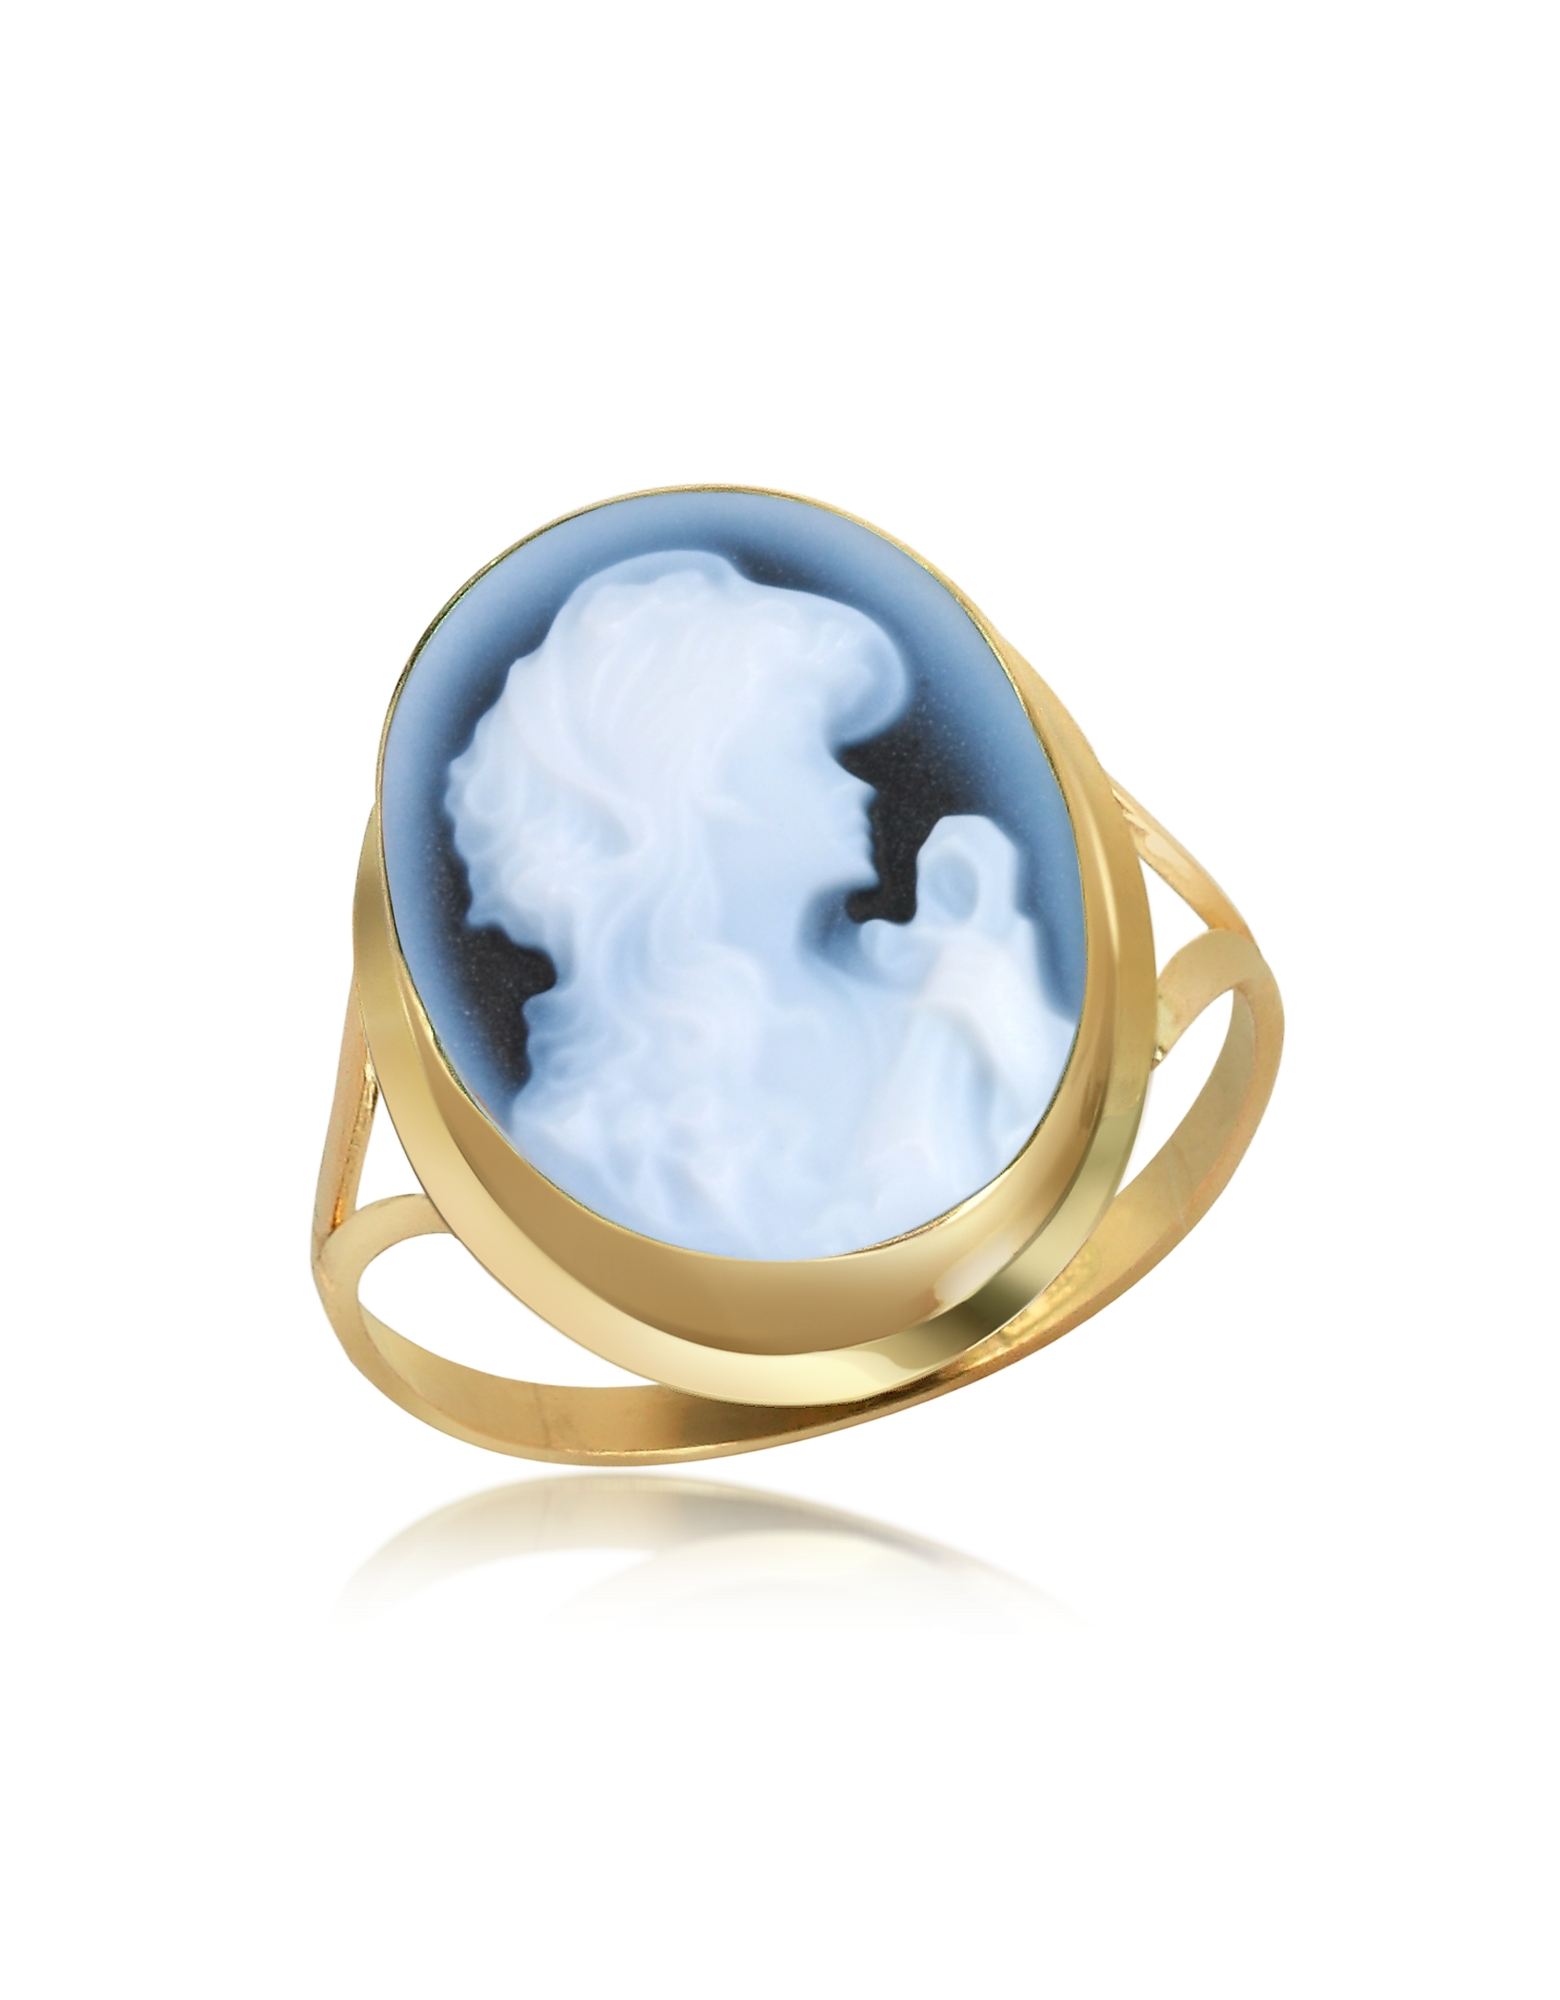 Del Gatto Cameo, Woman Agate Cameo 18K Gold Ring